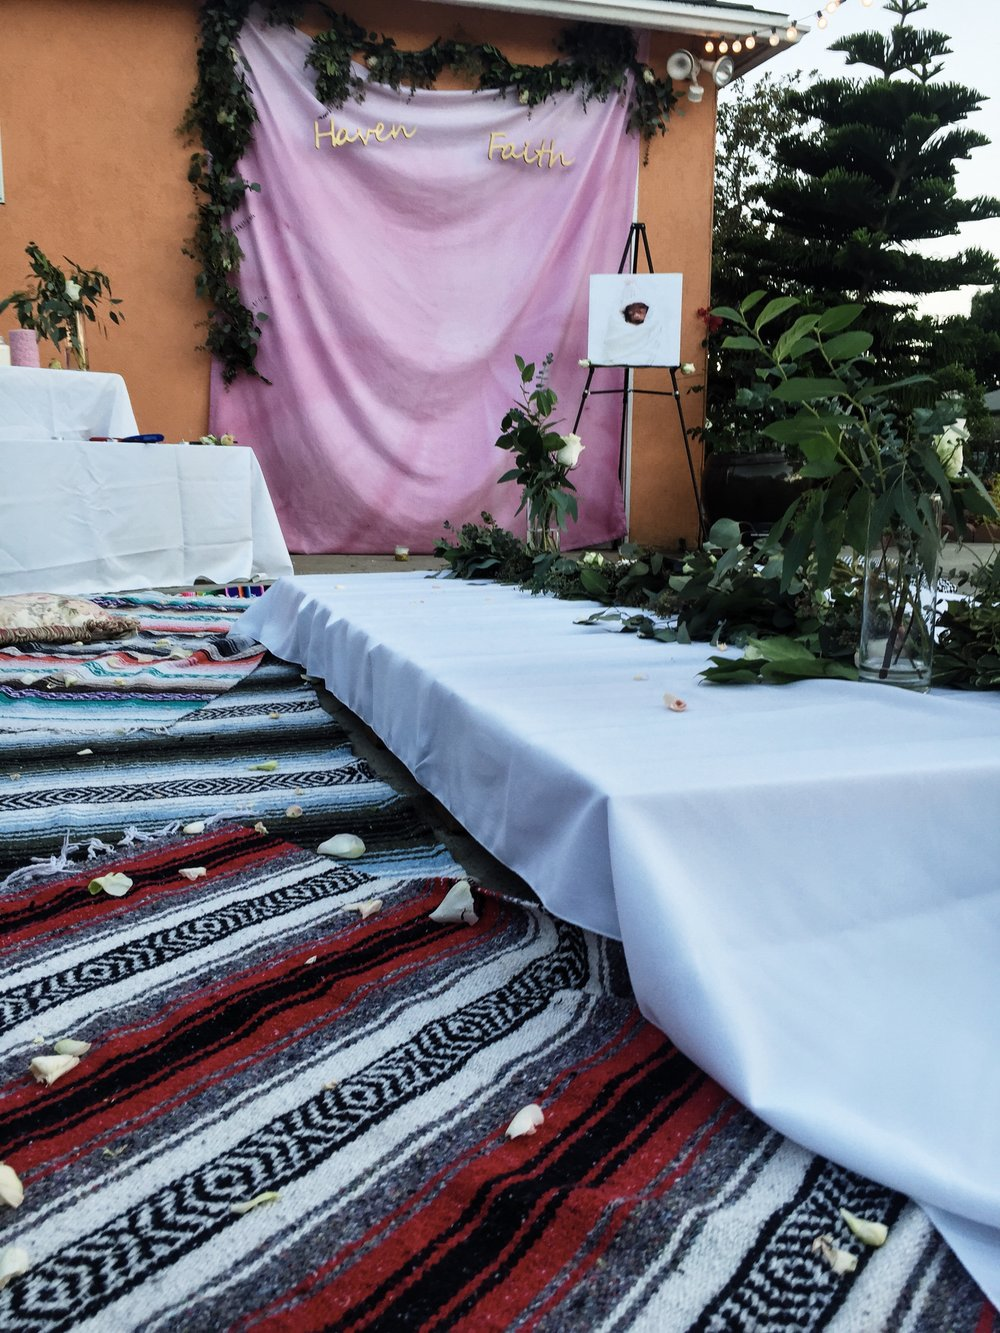 Falsa/ Mexican blankets were collected from my siblings and niece -- which we all already had in our homes. My sister & brother in law's old pallet bed was used for our table and created the bohemian theme we wanted to have. All pillows were something we already had as well.